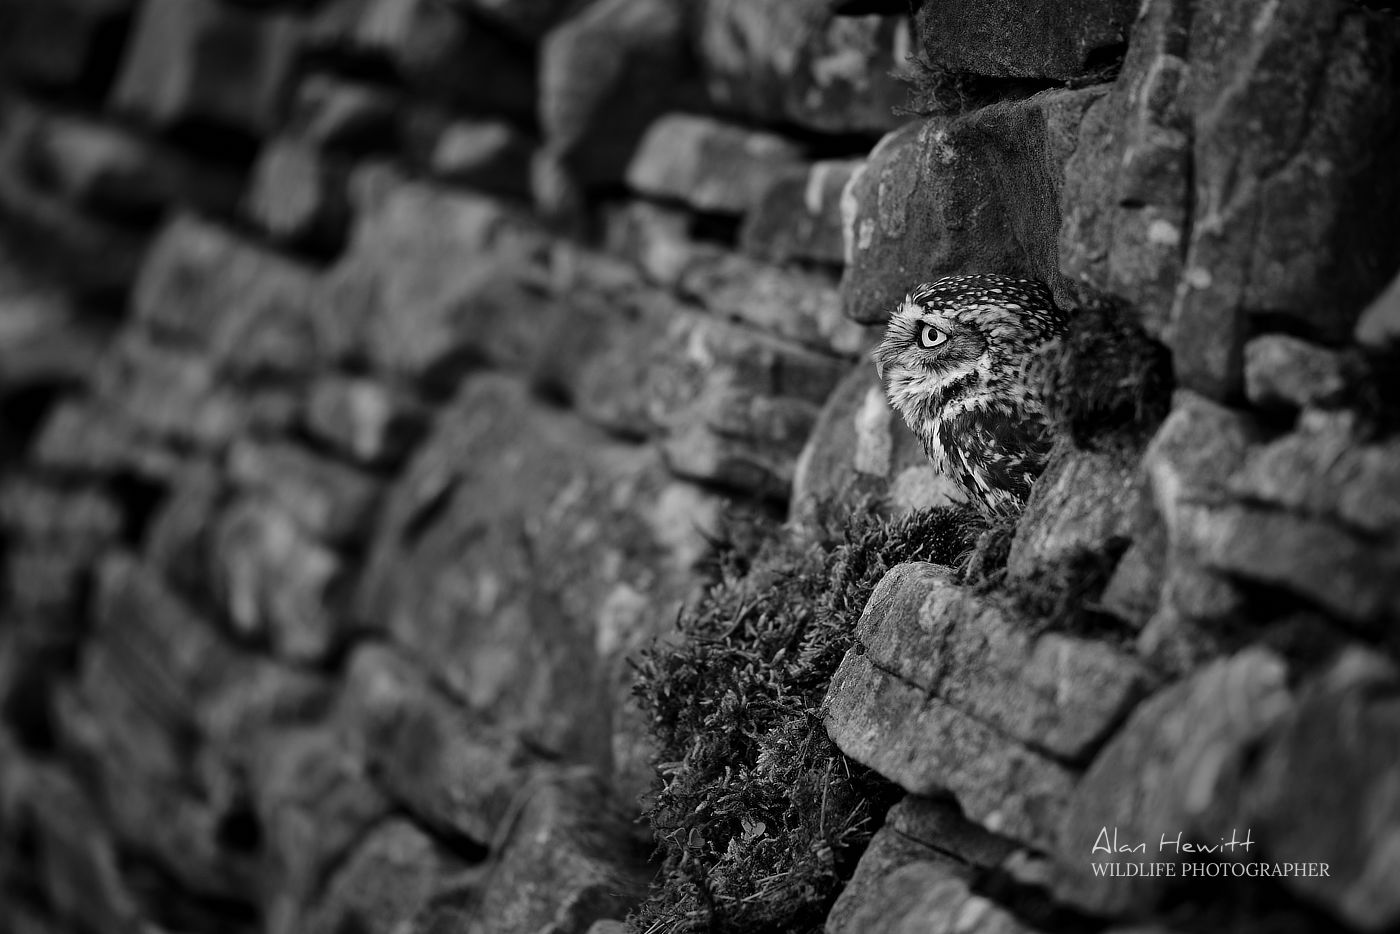 Little Owl, Northumberland Birds of Prey Photography Workshop